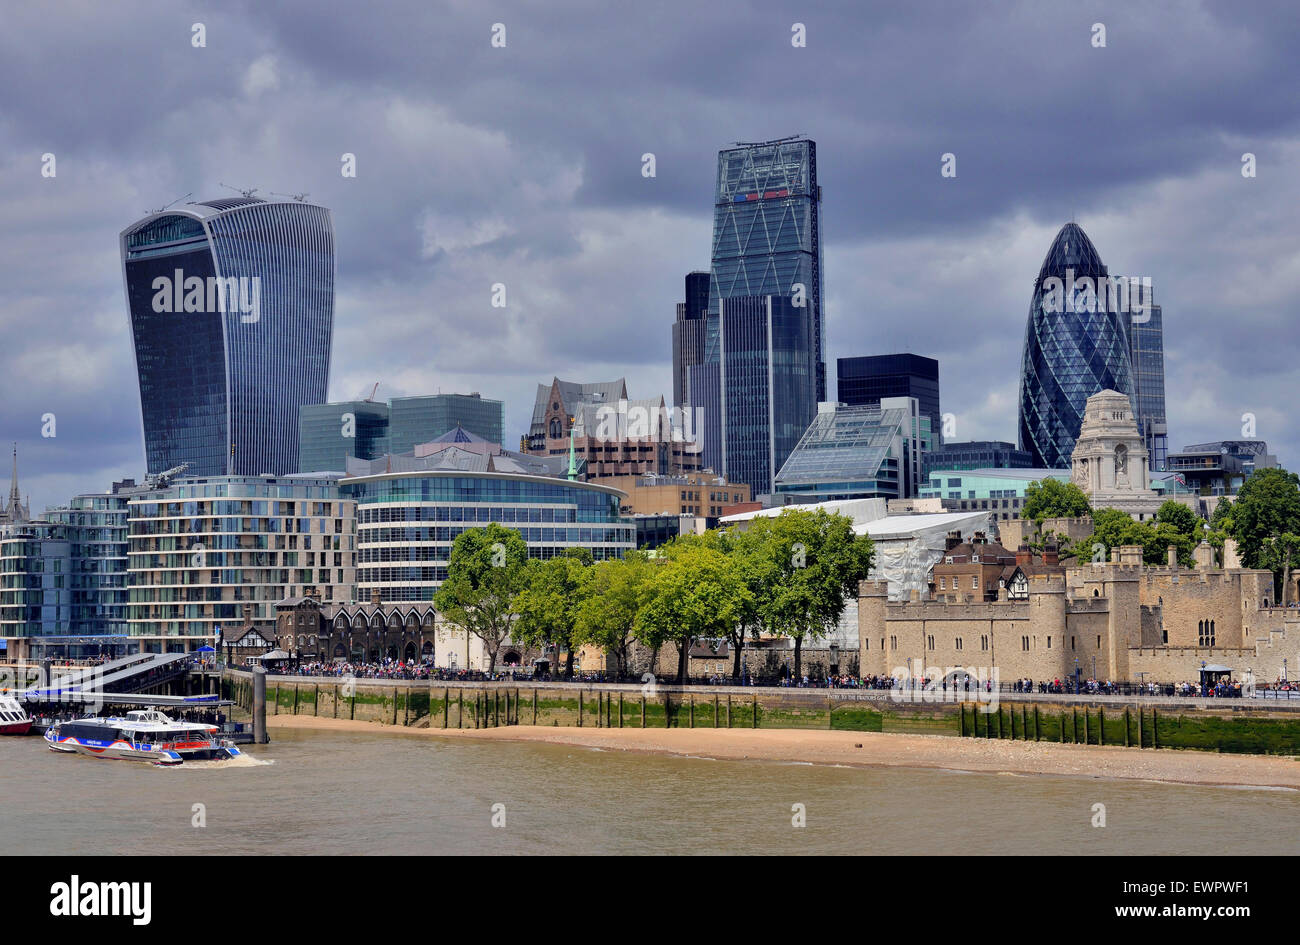 Skyline of the financial district, City of London, Tower of London on the right, The Gherkin behind, London, England - Stock Image